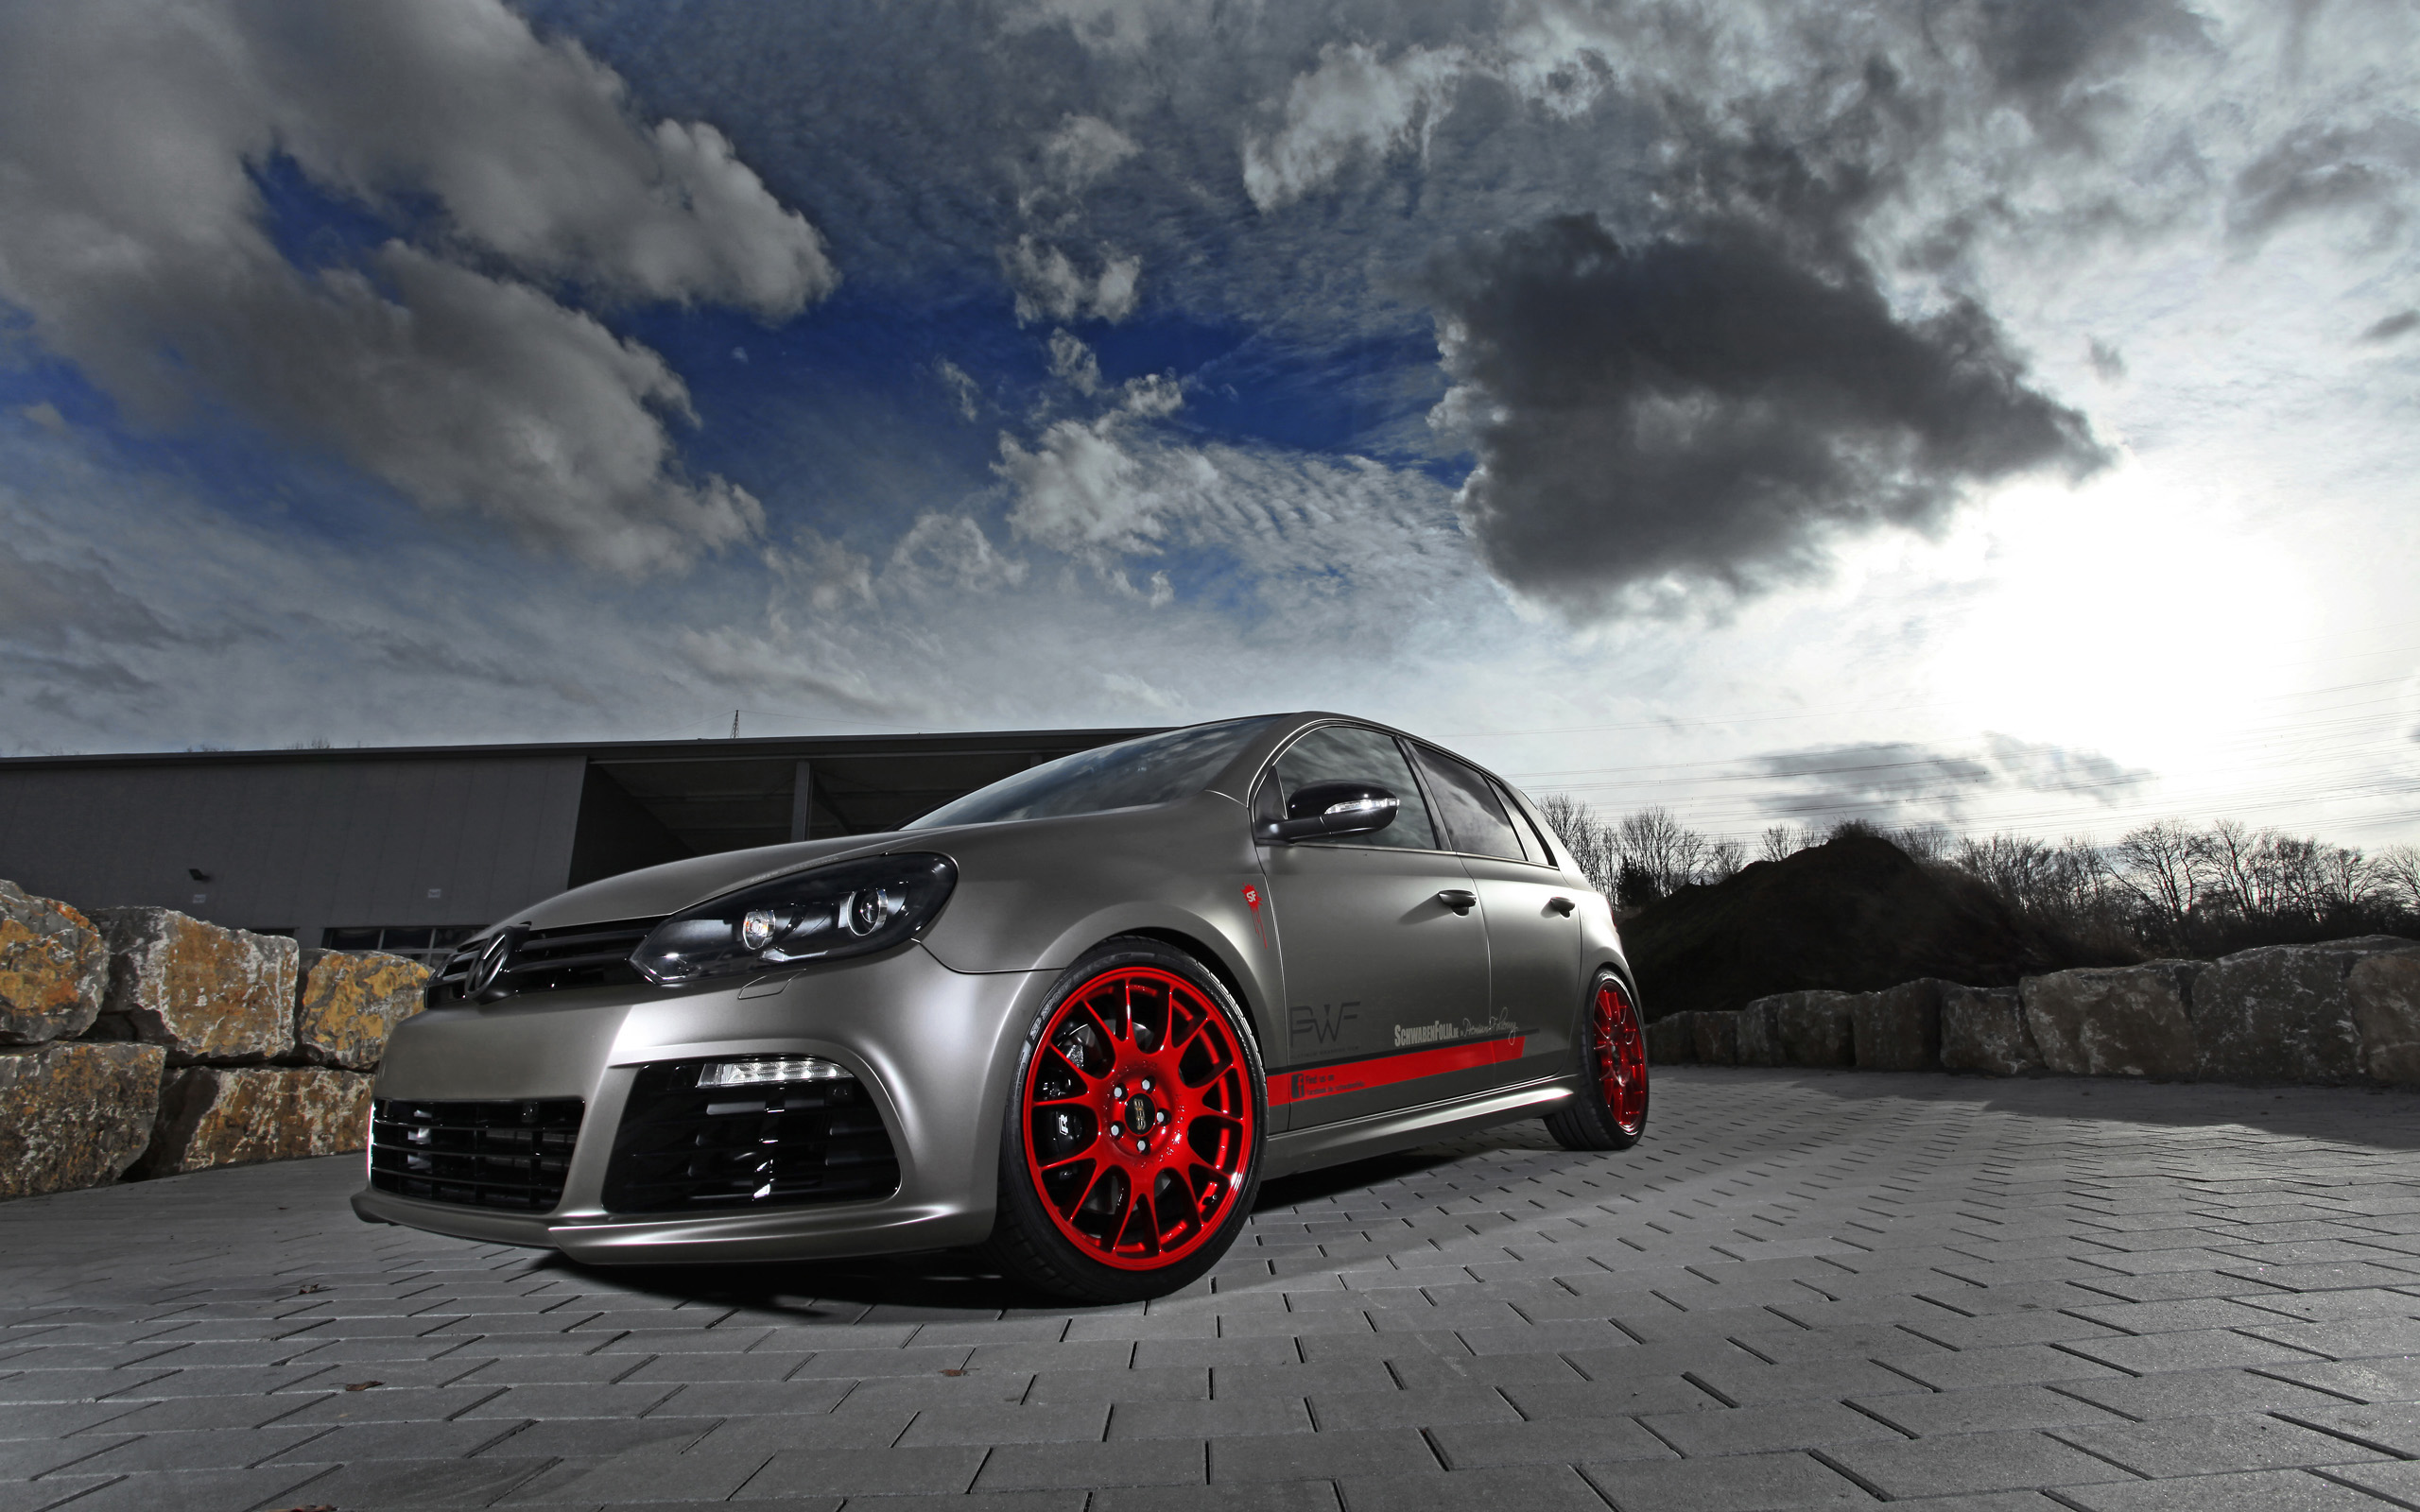 volkswagen golf r hd desktop wallpapers 4k hd. Black Bedroom Furniture Sets. Home Design Ideas